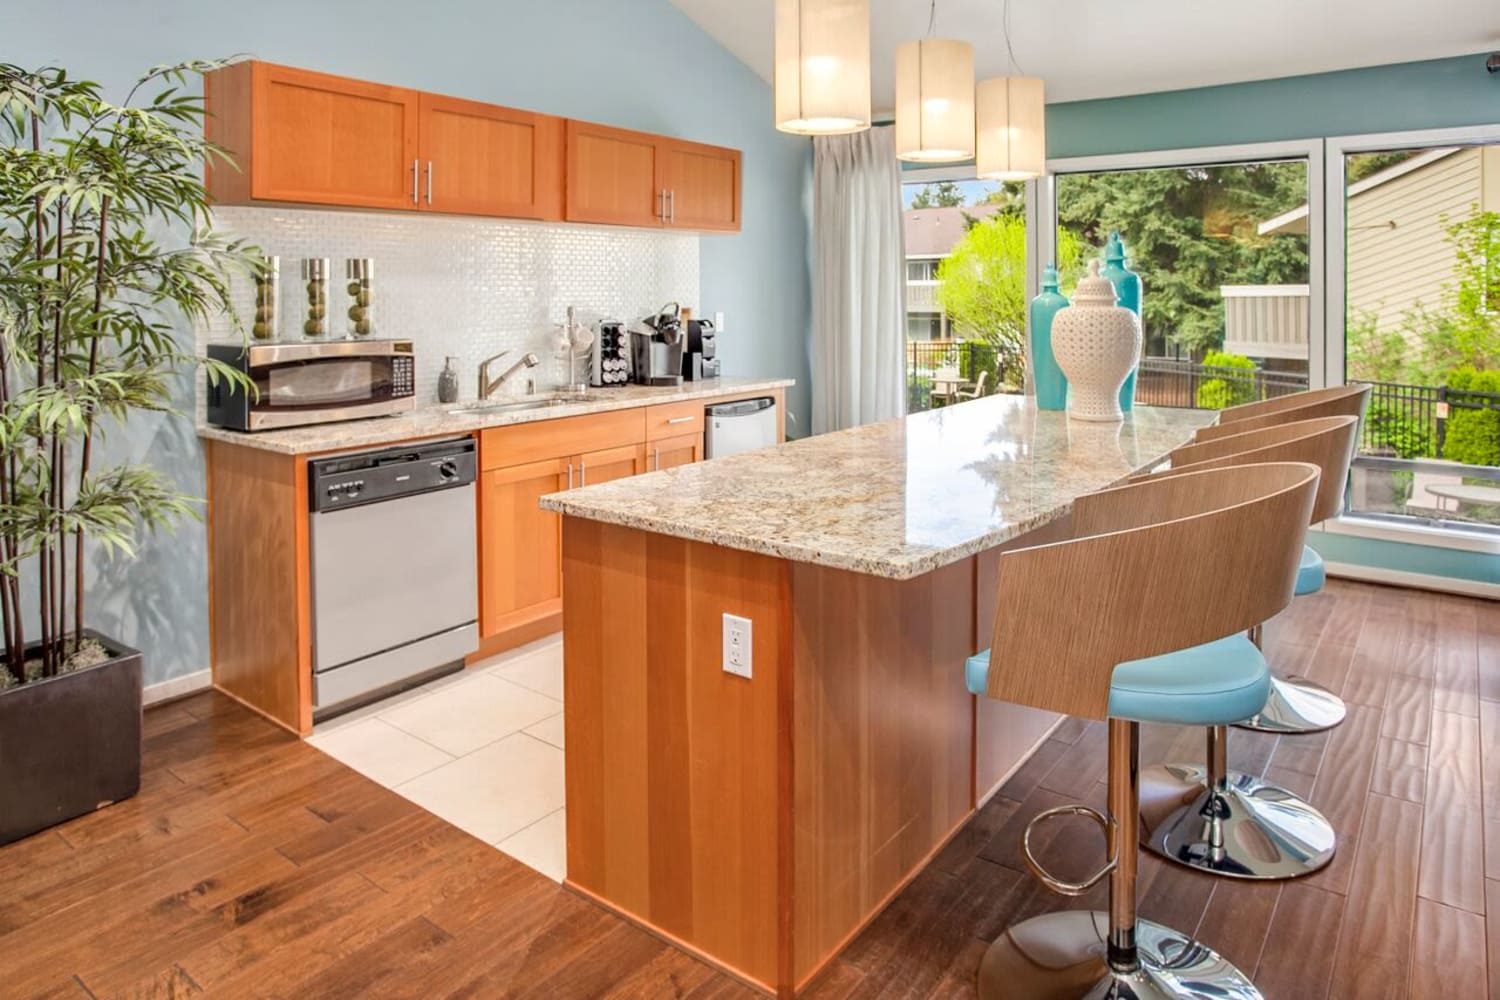 Bright kitchen perfect for entertaining at The VUE in Kirkland, Washington